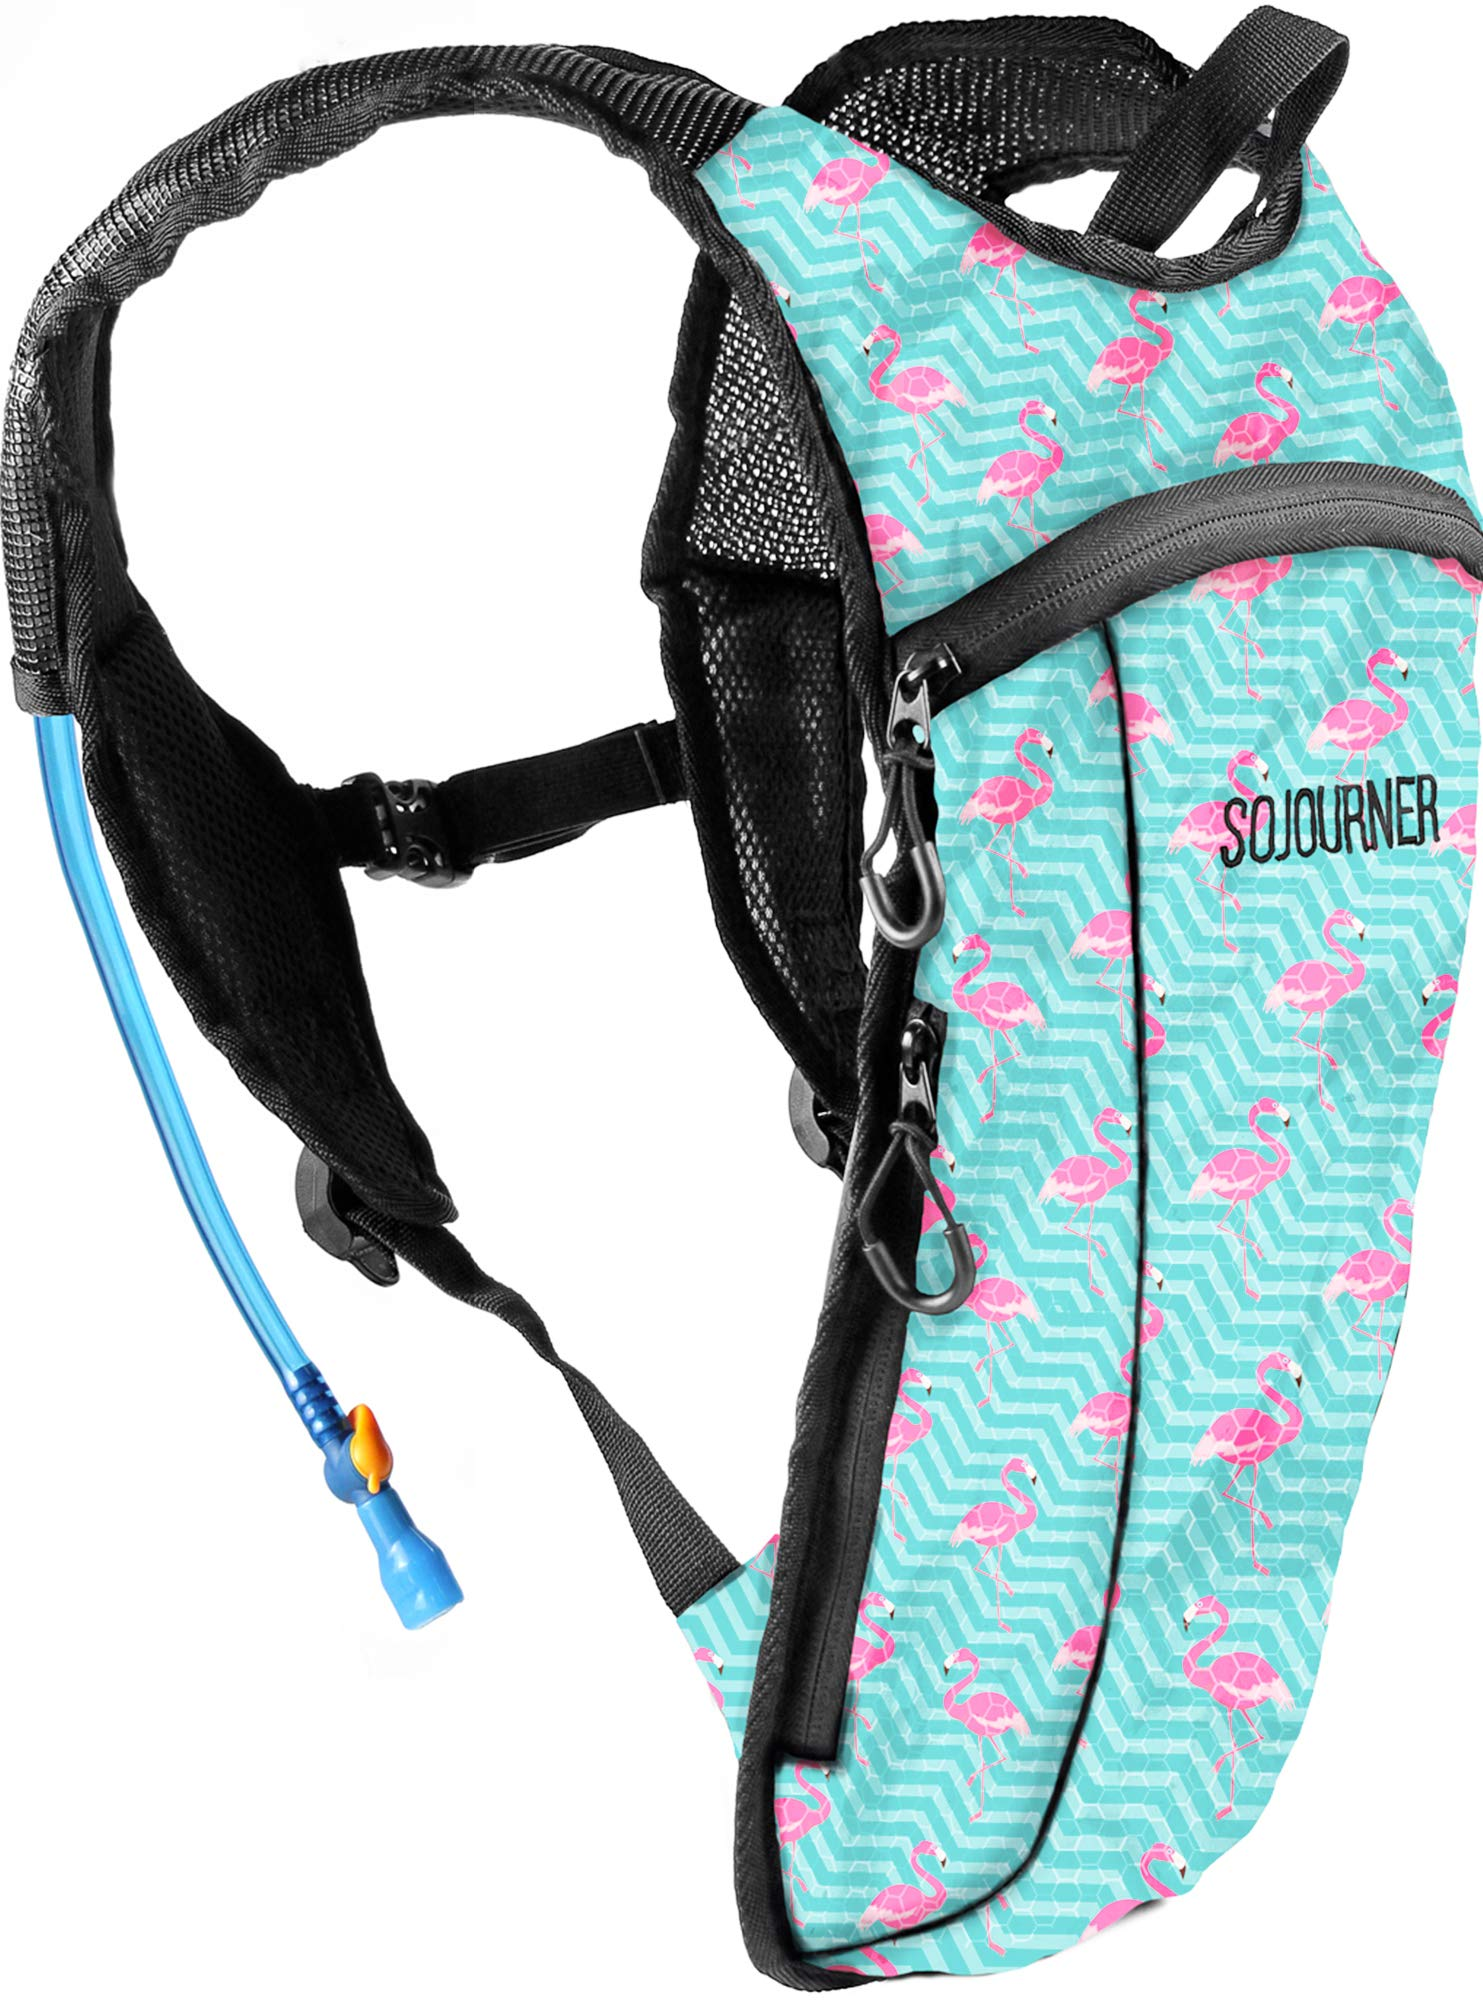 Sojourner Rave Hydration Pack Backpack - 2L Water Bladder Included for Festivals, Raves, Hiking, Biking, Climbing, Running and More (Small) (Flamingo) by SoJourner Bags